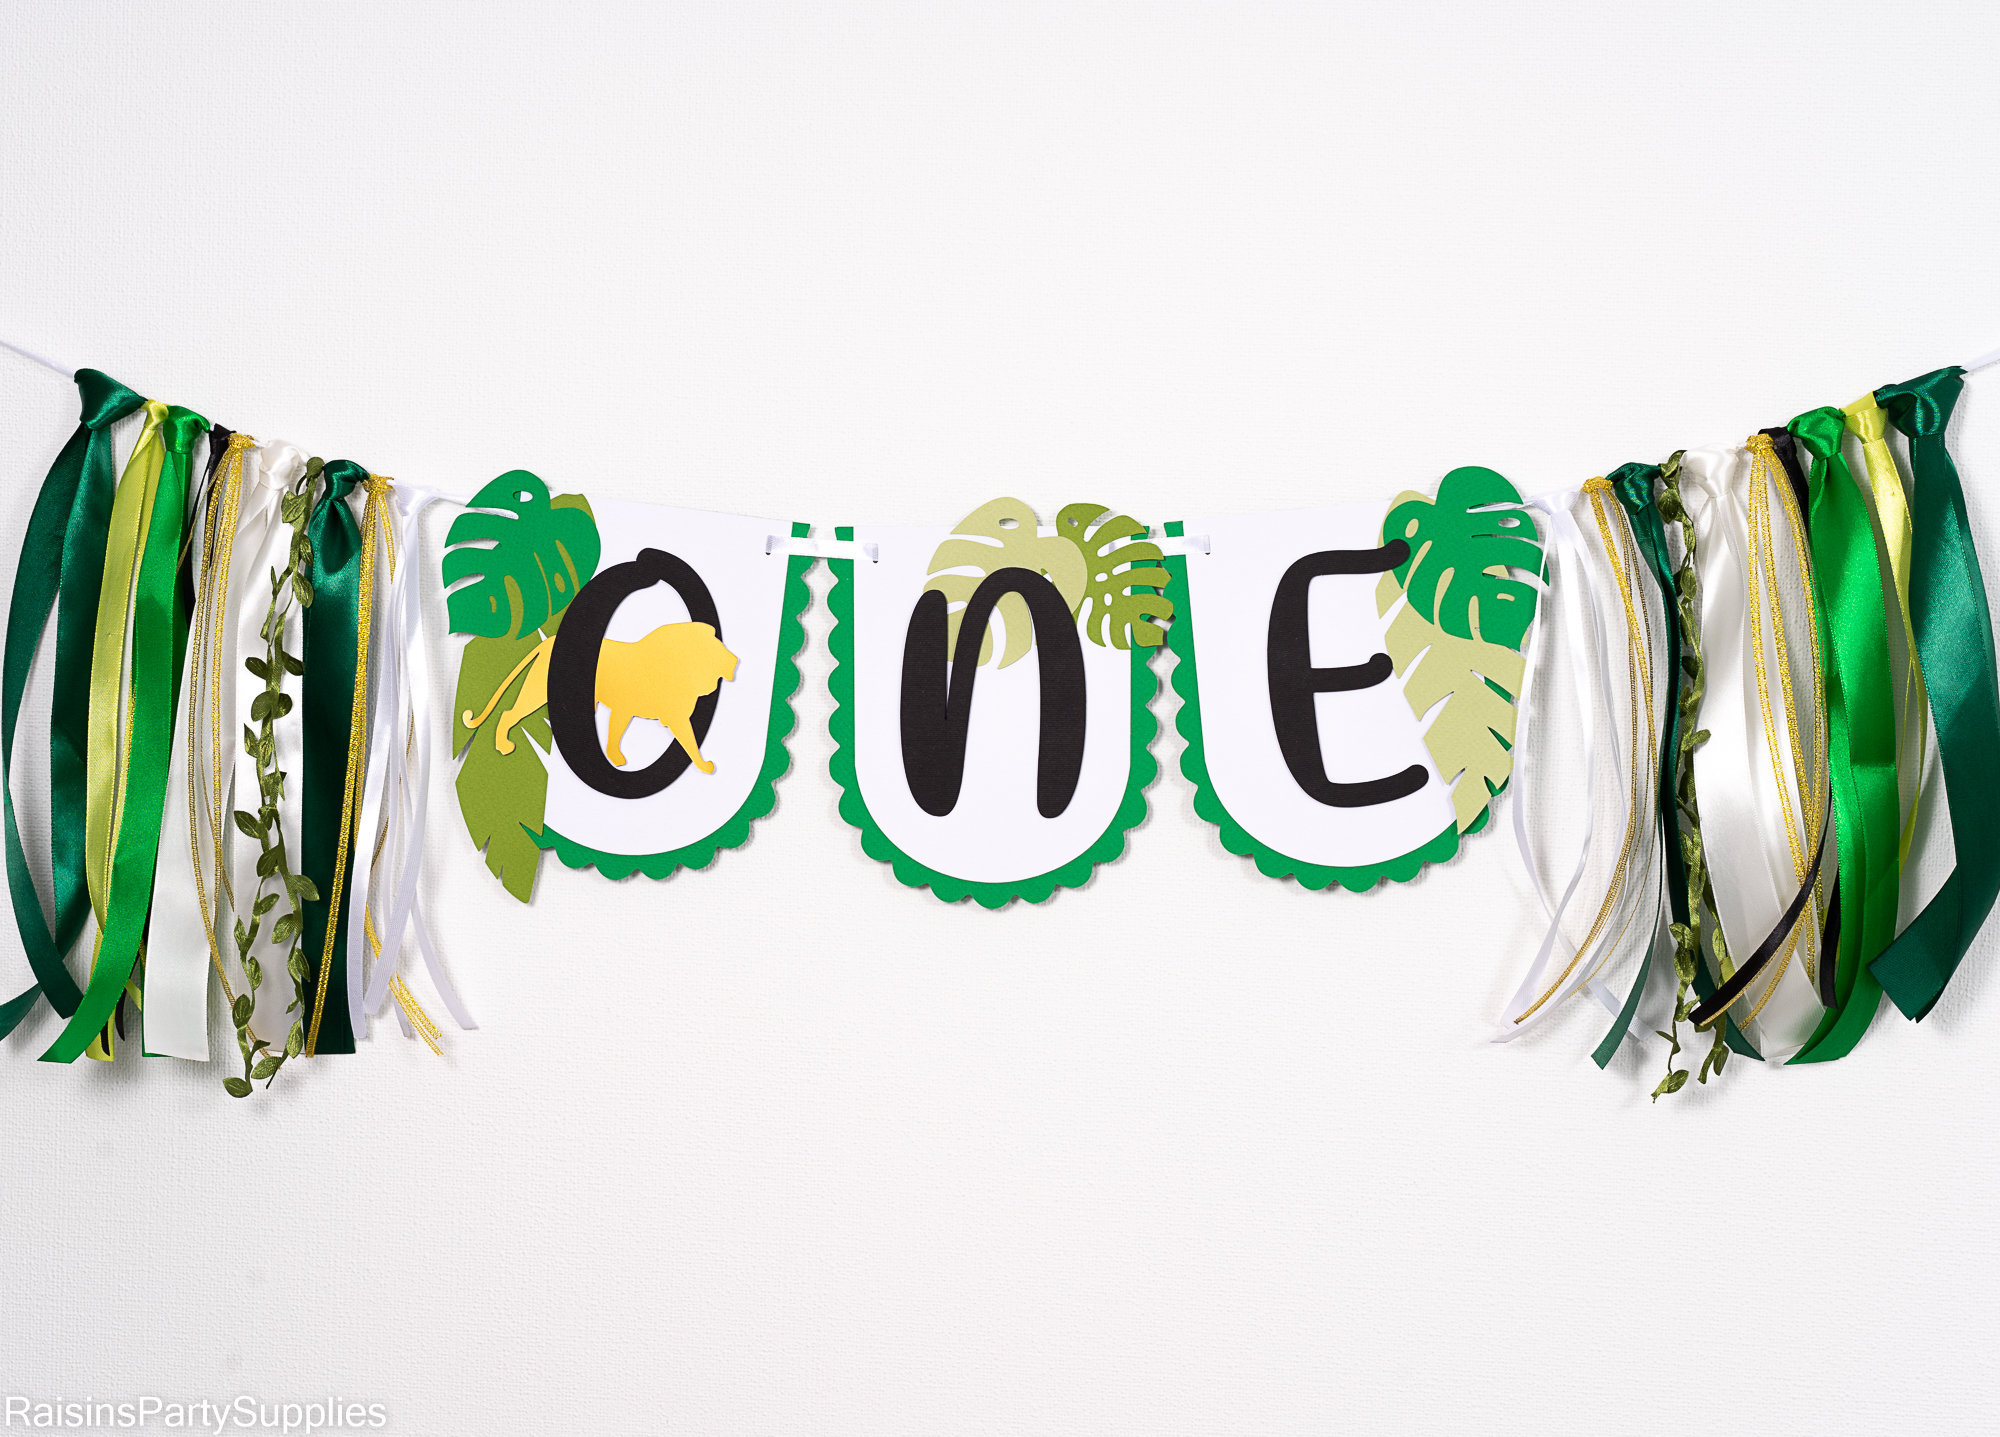 Safari ONE high chair banner for baby boy first birthday party, Jungle highchair garland with lion, Wild one birthday decorations for sale